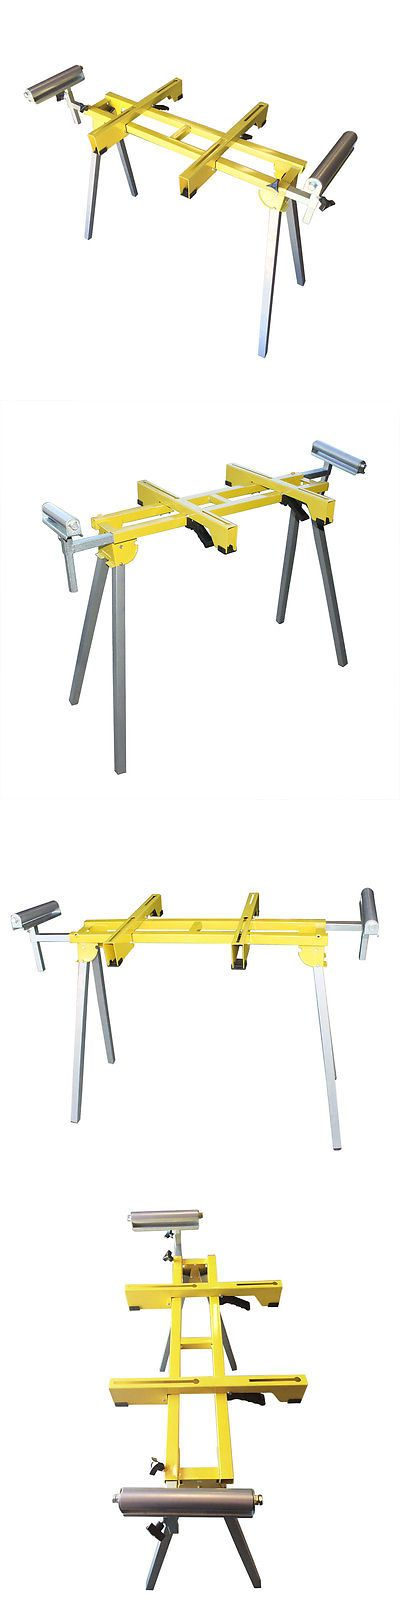 Jacks and Stands 43593: Big Horn 14112 42 To 112 Miter Saw Stand (T5000) -> BUY IT NOW ONLY: $102.67 on eBay!